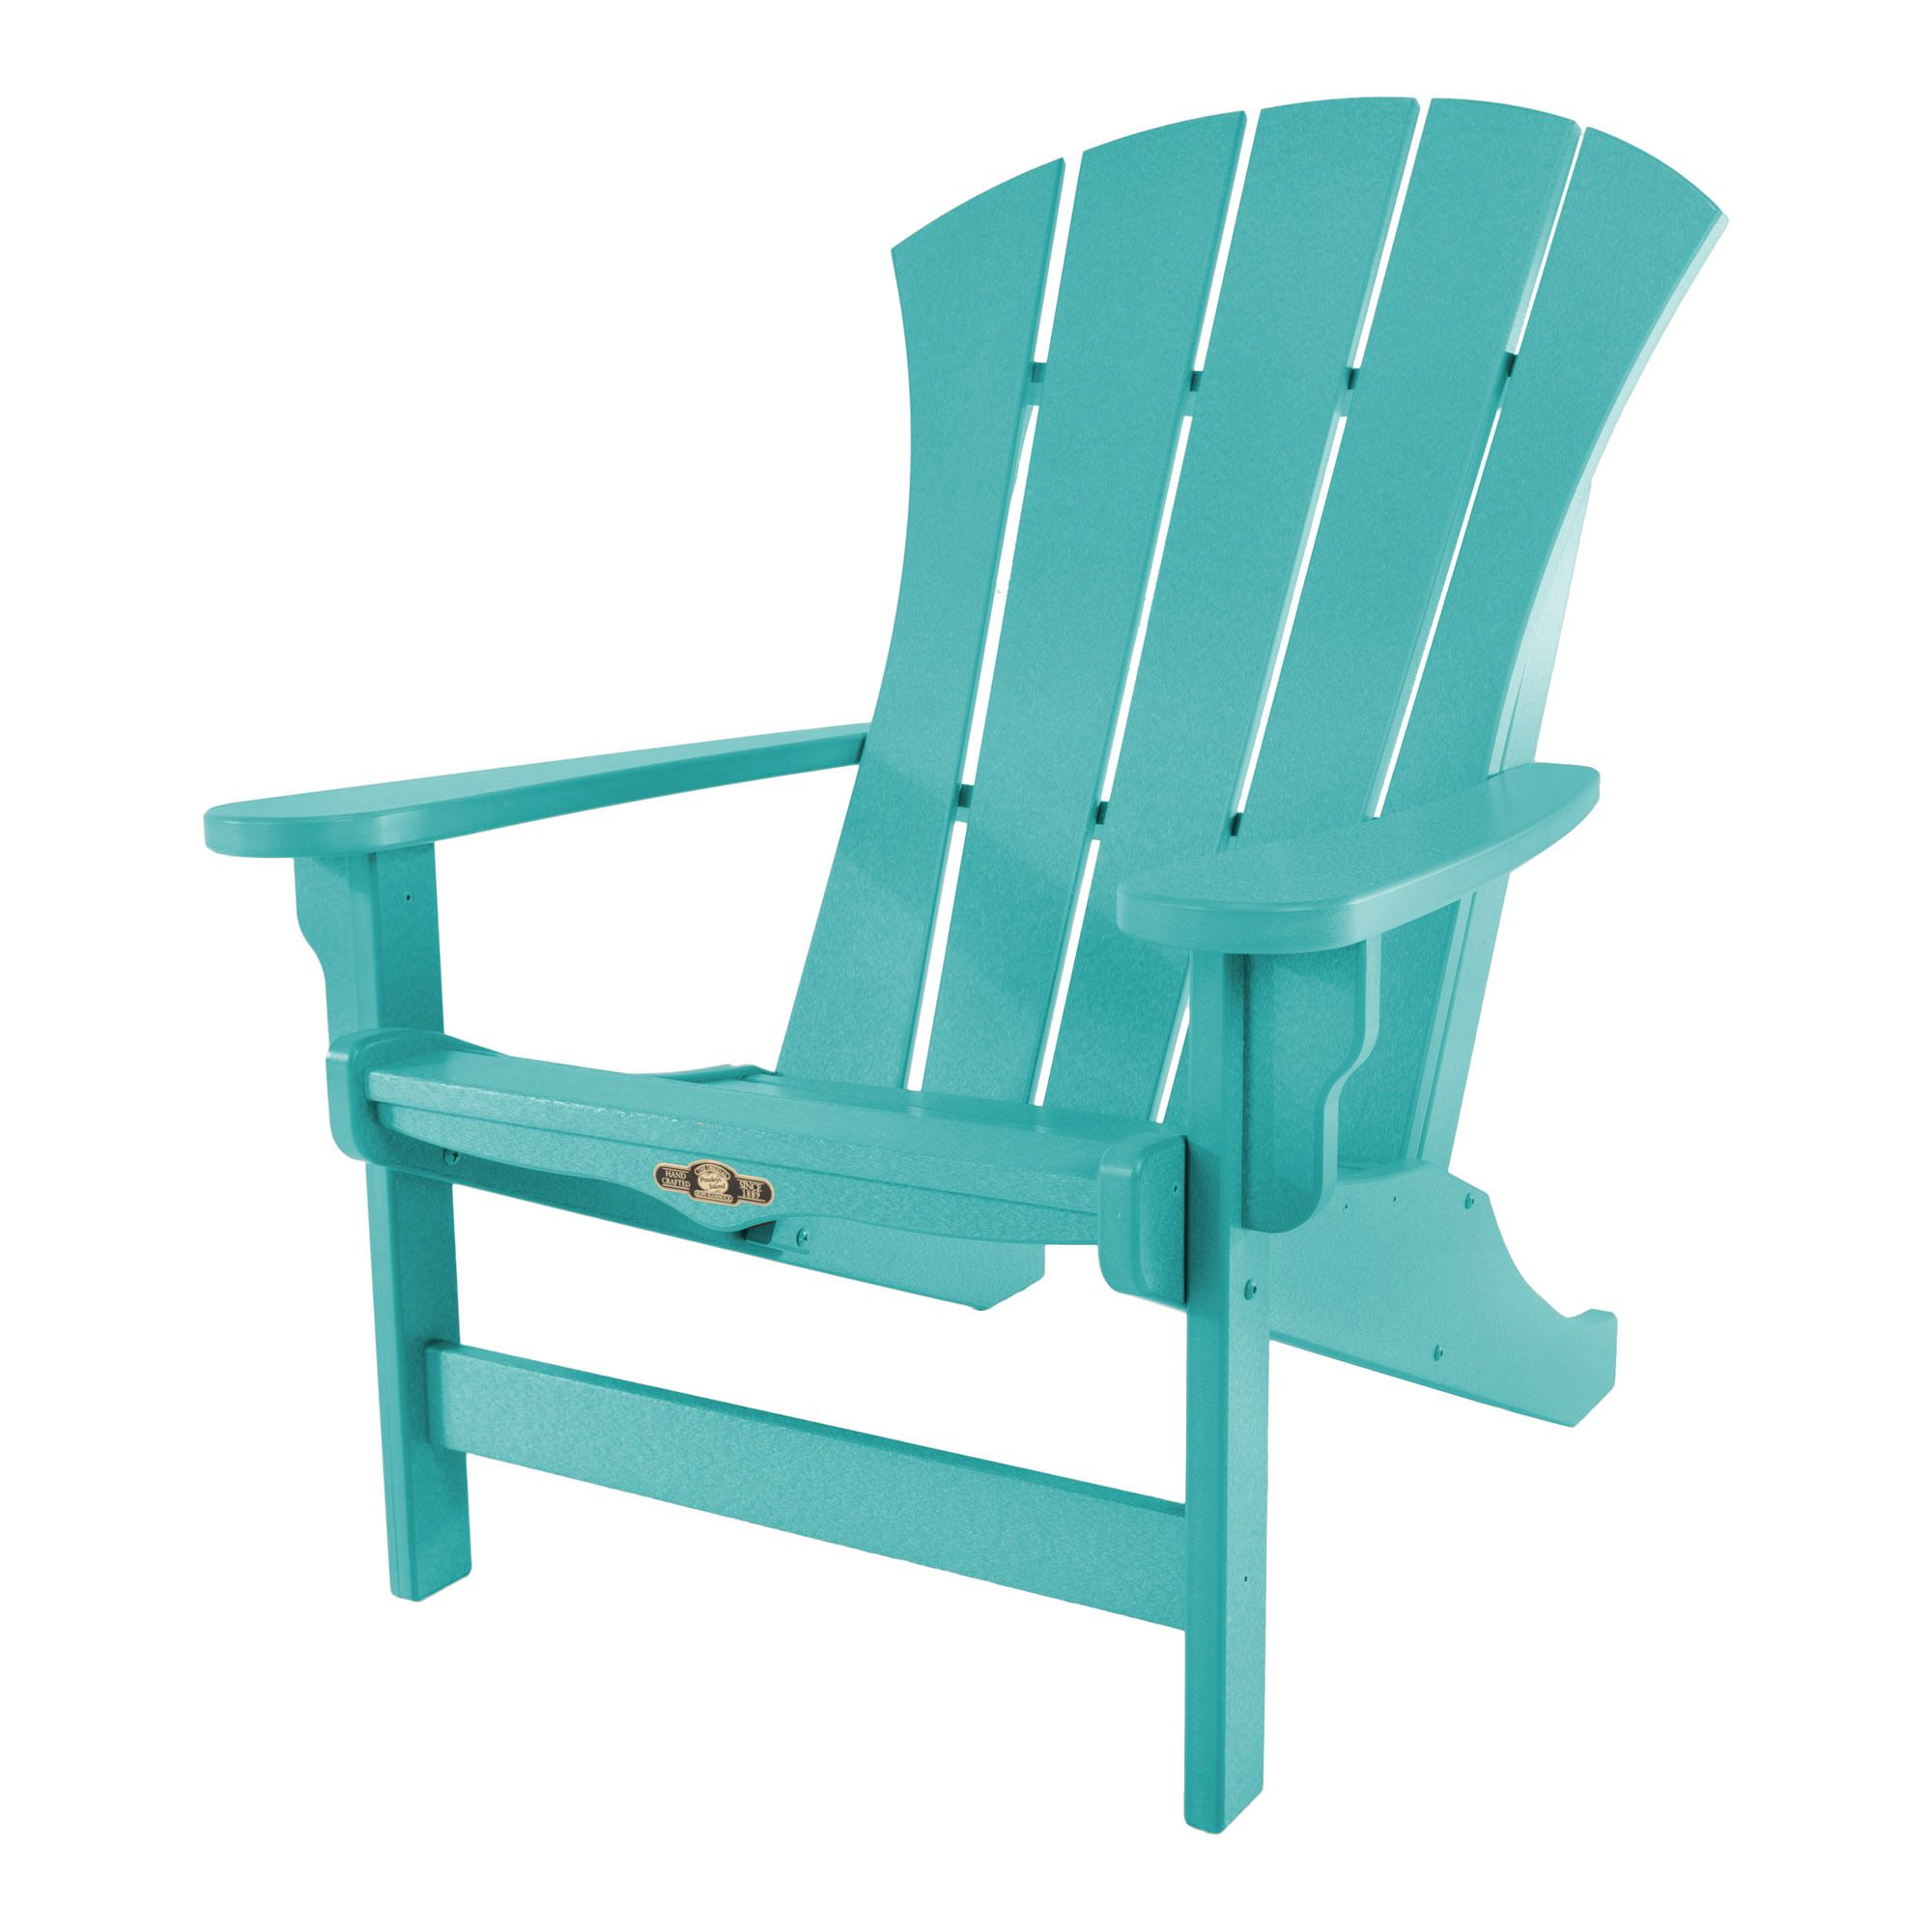 ... Sunrise Adirondack Chair · Sunrise Adirondack Chair